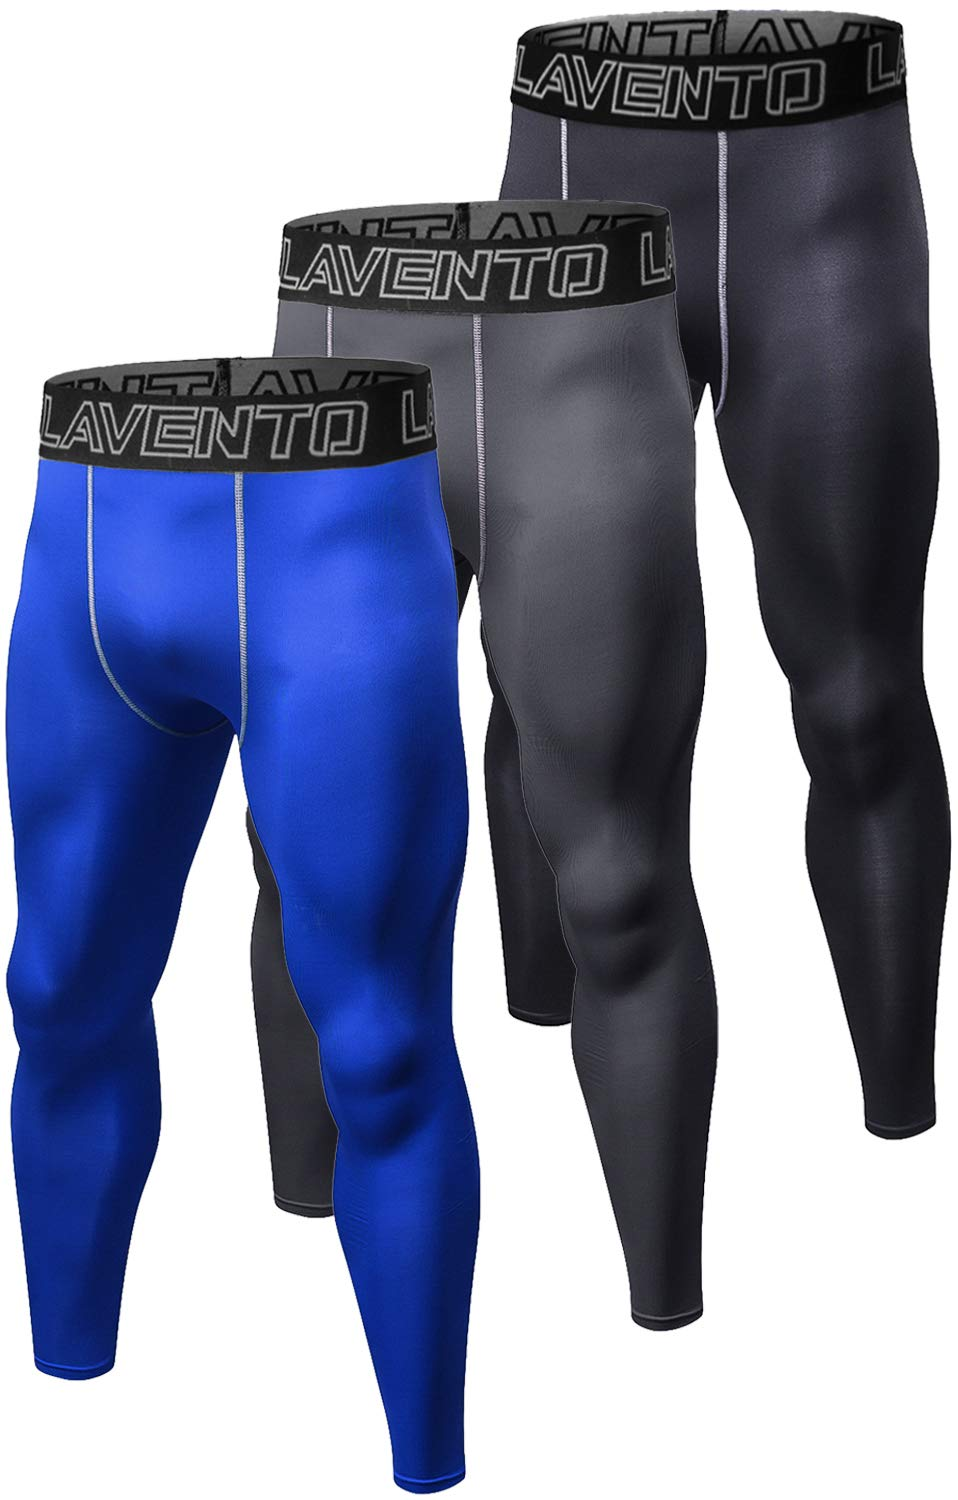 Lavento Men's 3-Pack Compression Running Tights Workout Base Layer Leggings